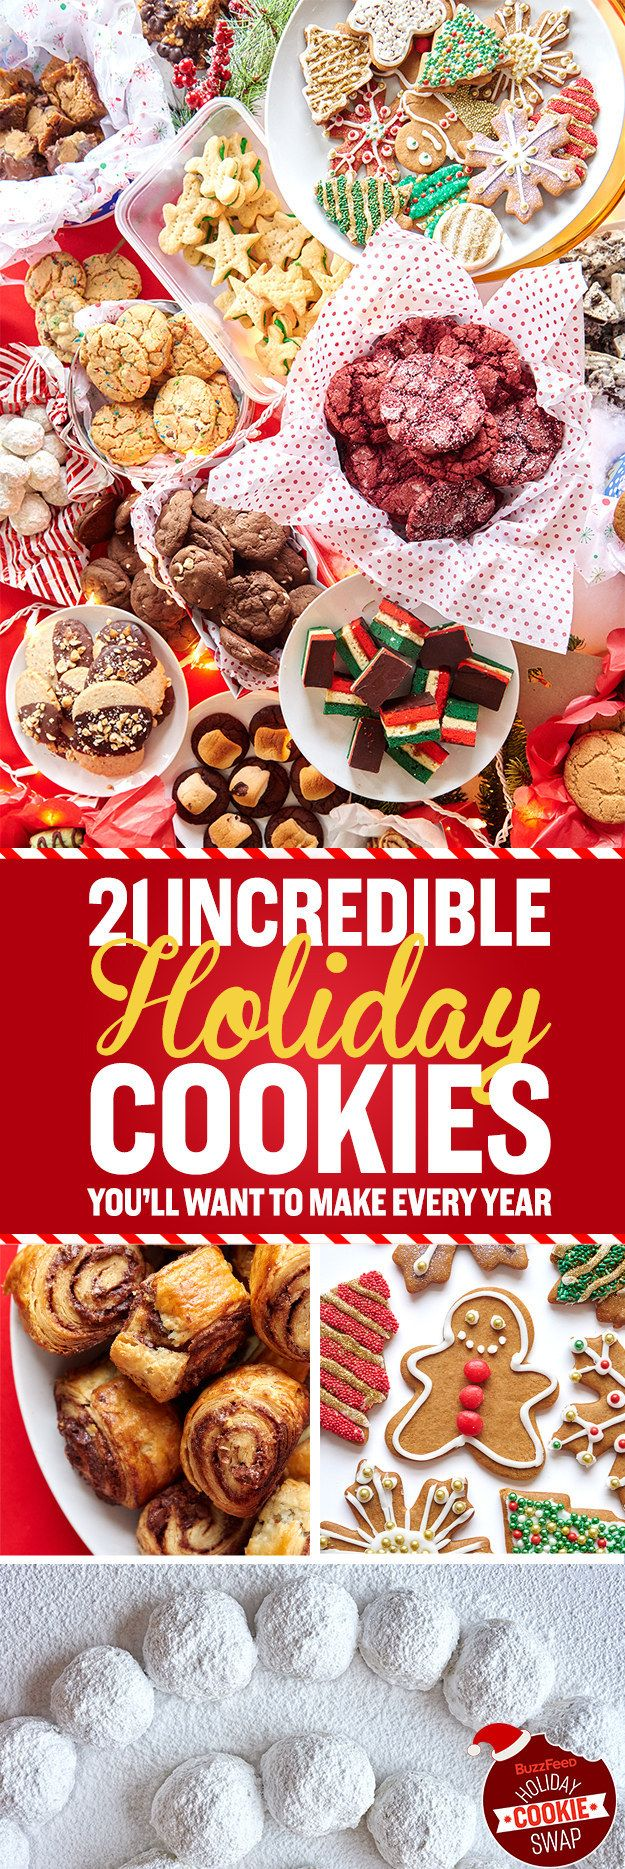 We asked you to post your favorite holiday cookie recipes in the comments of this BuzzFeed post a few weeks ago and on Facebook — a ~virtual cookie swap~ of sorts. | 21 Incredible Holiday Cookies You'll Want To Make Every Year